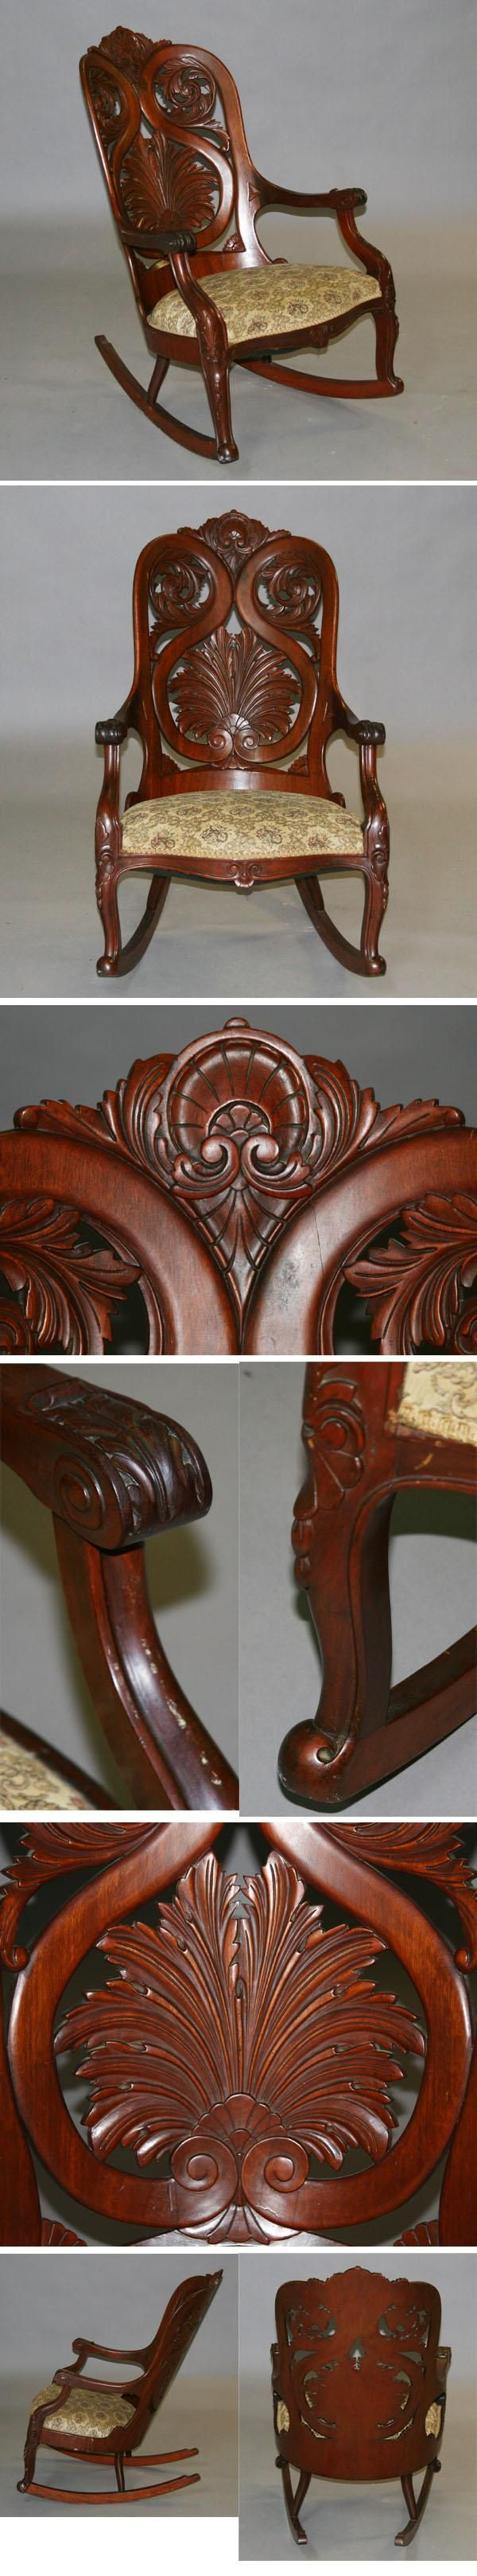 Victorian rocking chair - Rococo Laminated Rosewood Rocking Chair Rocker Antique Helper